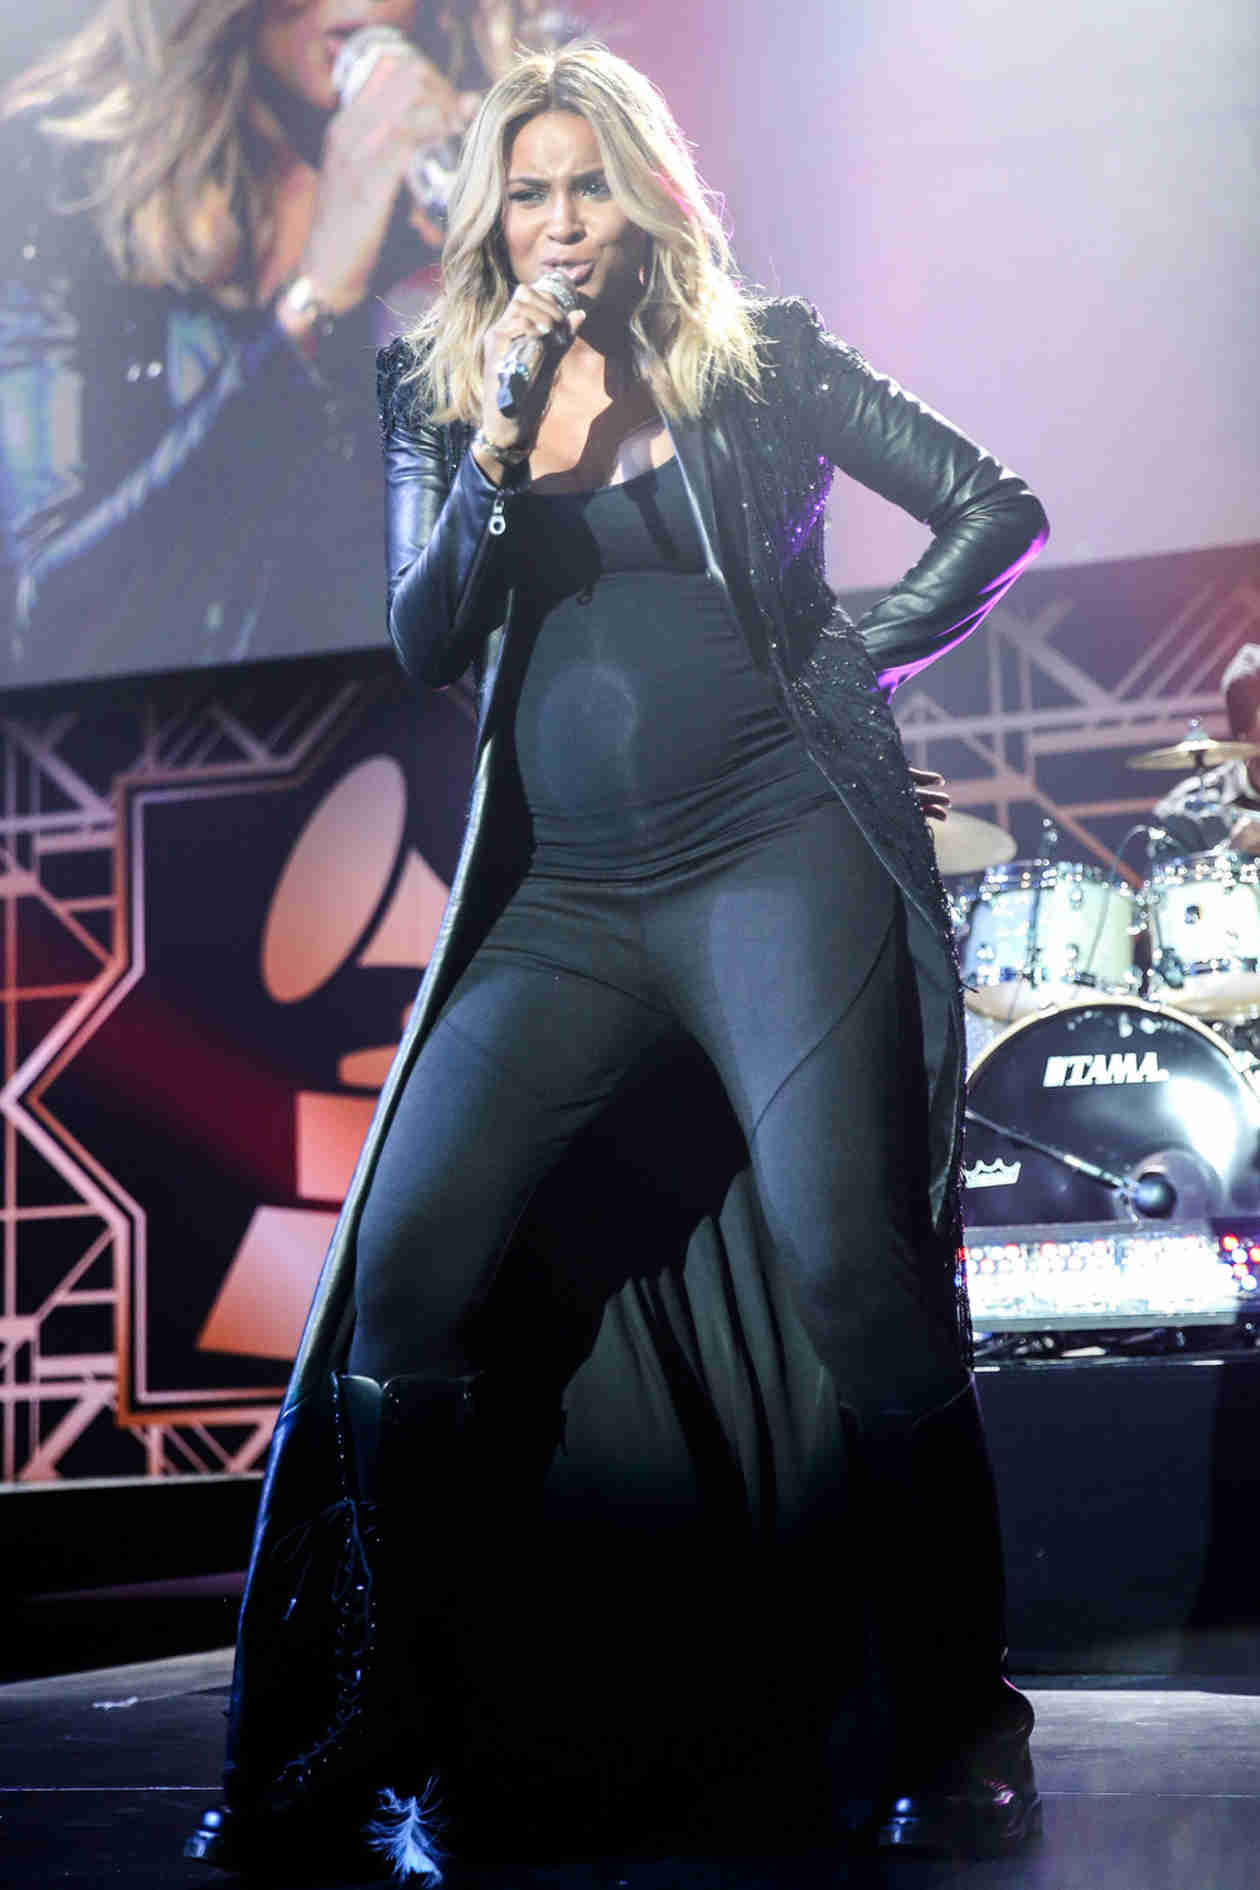 """Pregnant Ciara Performs Sexy Jams """"Ride It"""" and """"Pony"""" For Valentine's Day! (VIDEOS)"""